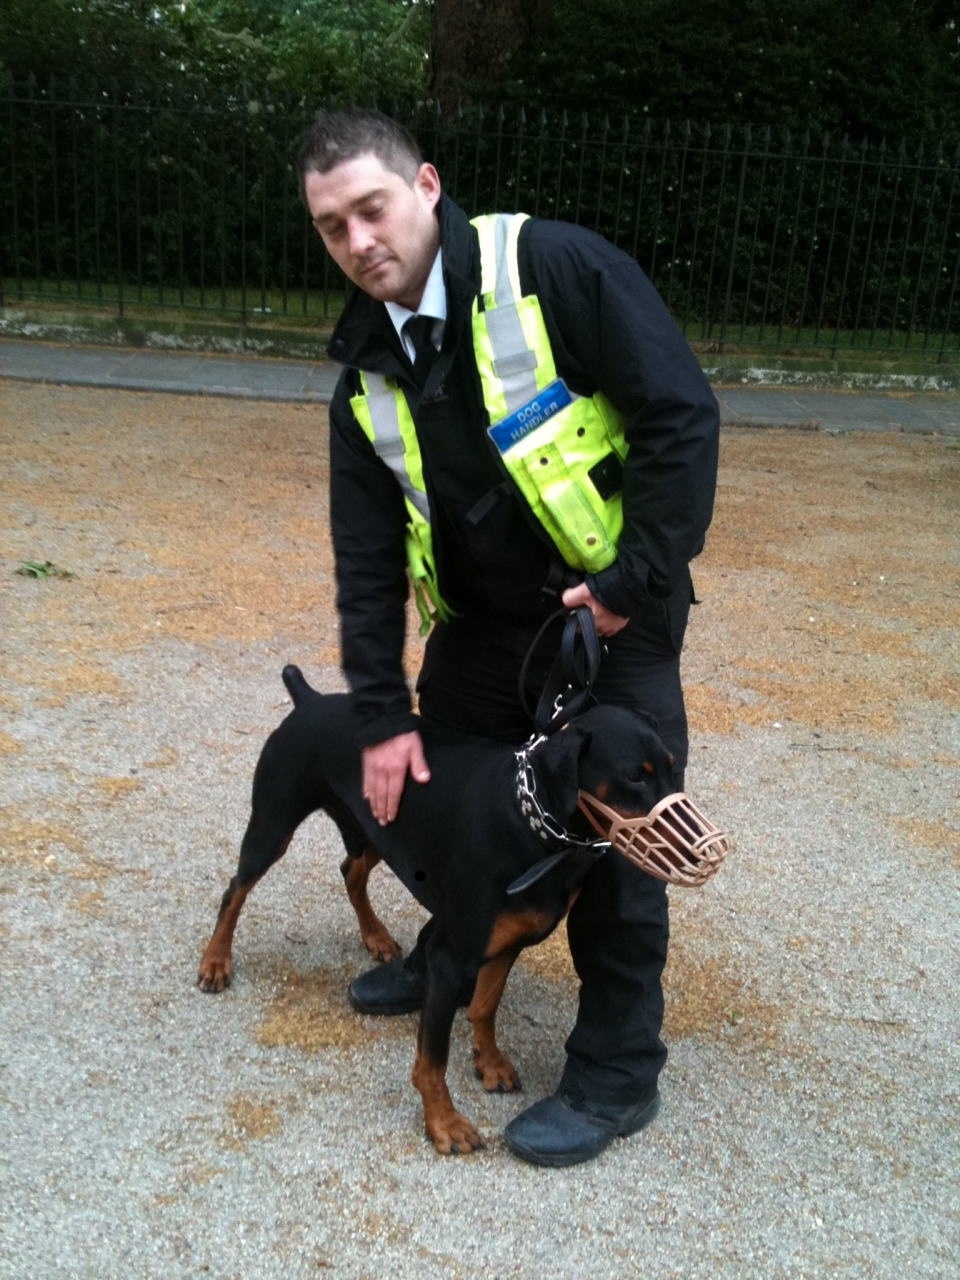 Security guard with muzzled dog